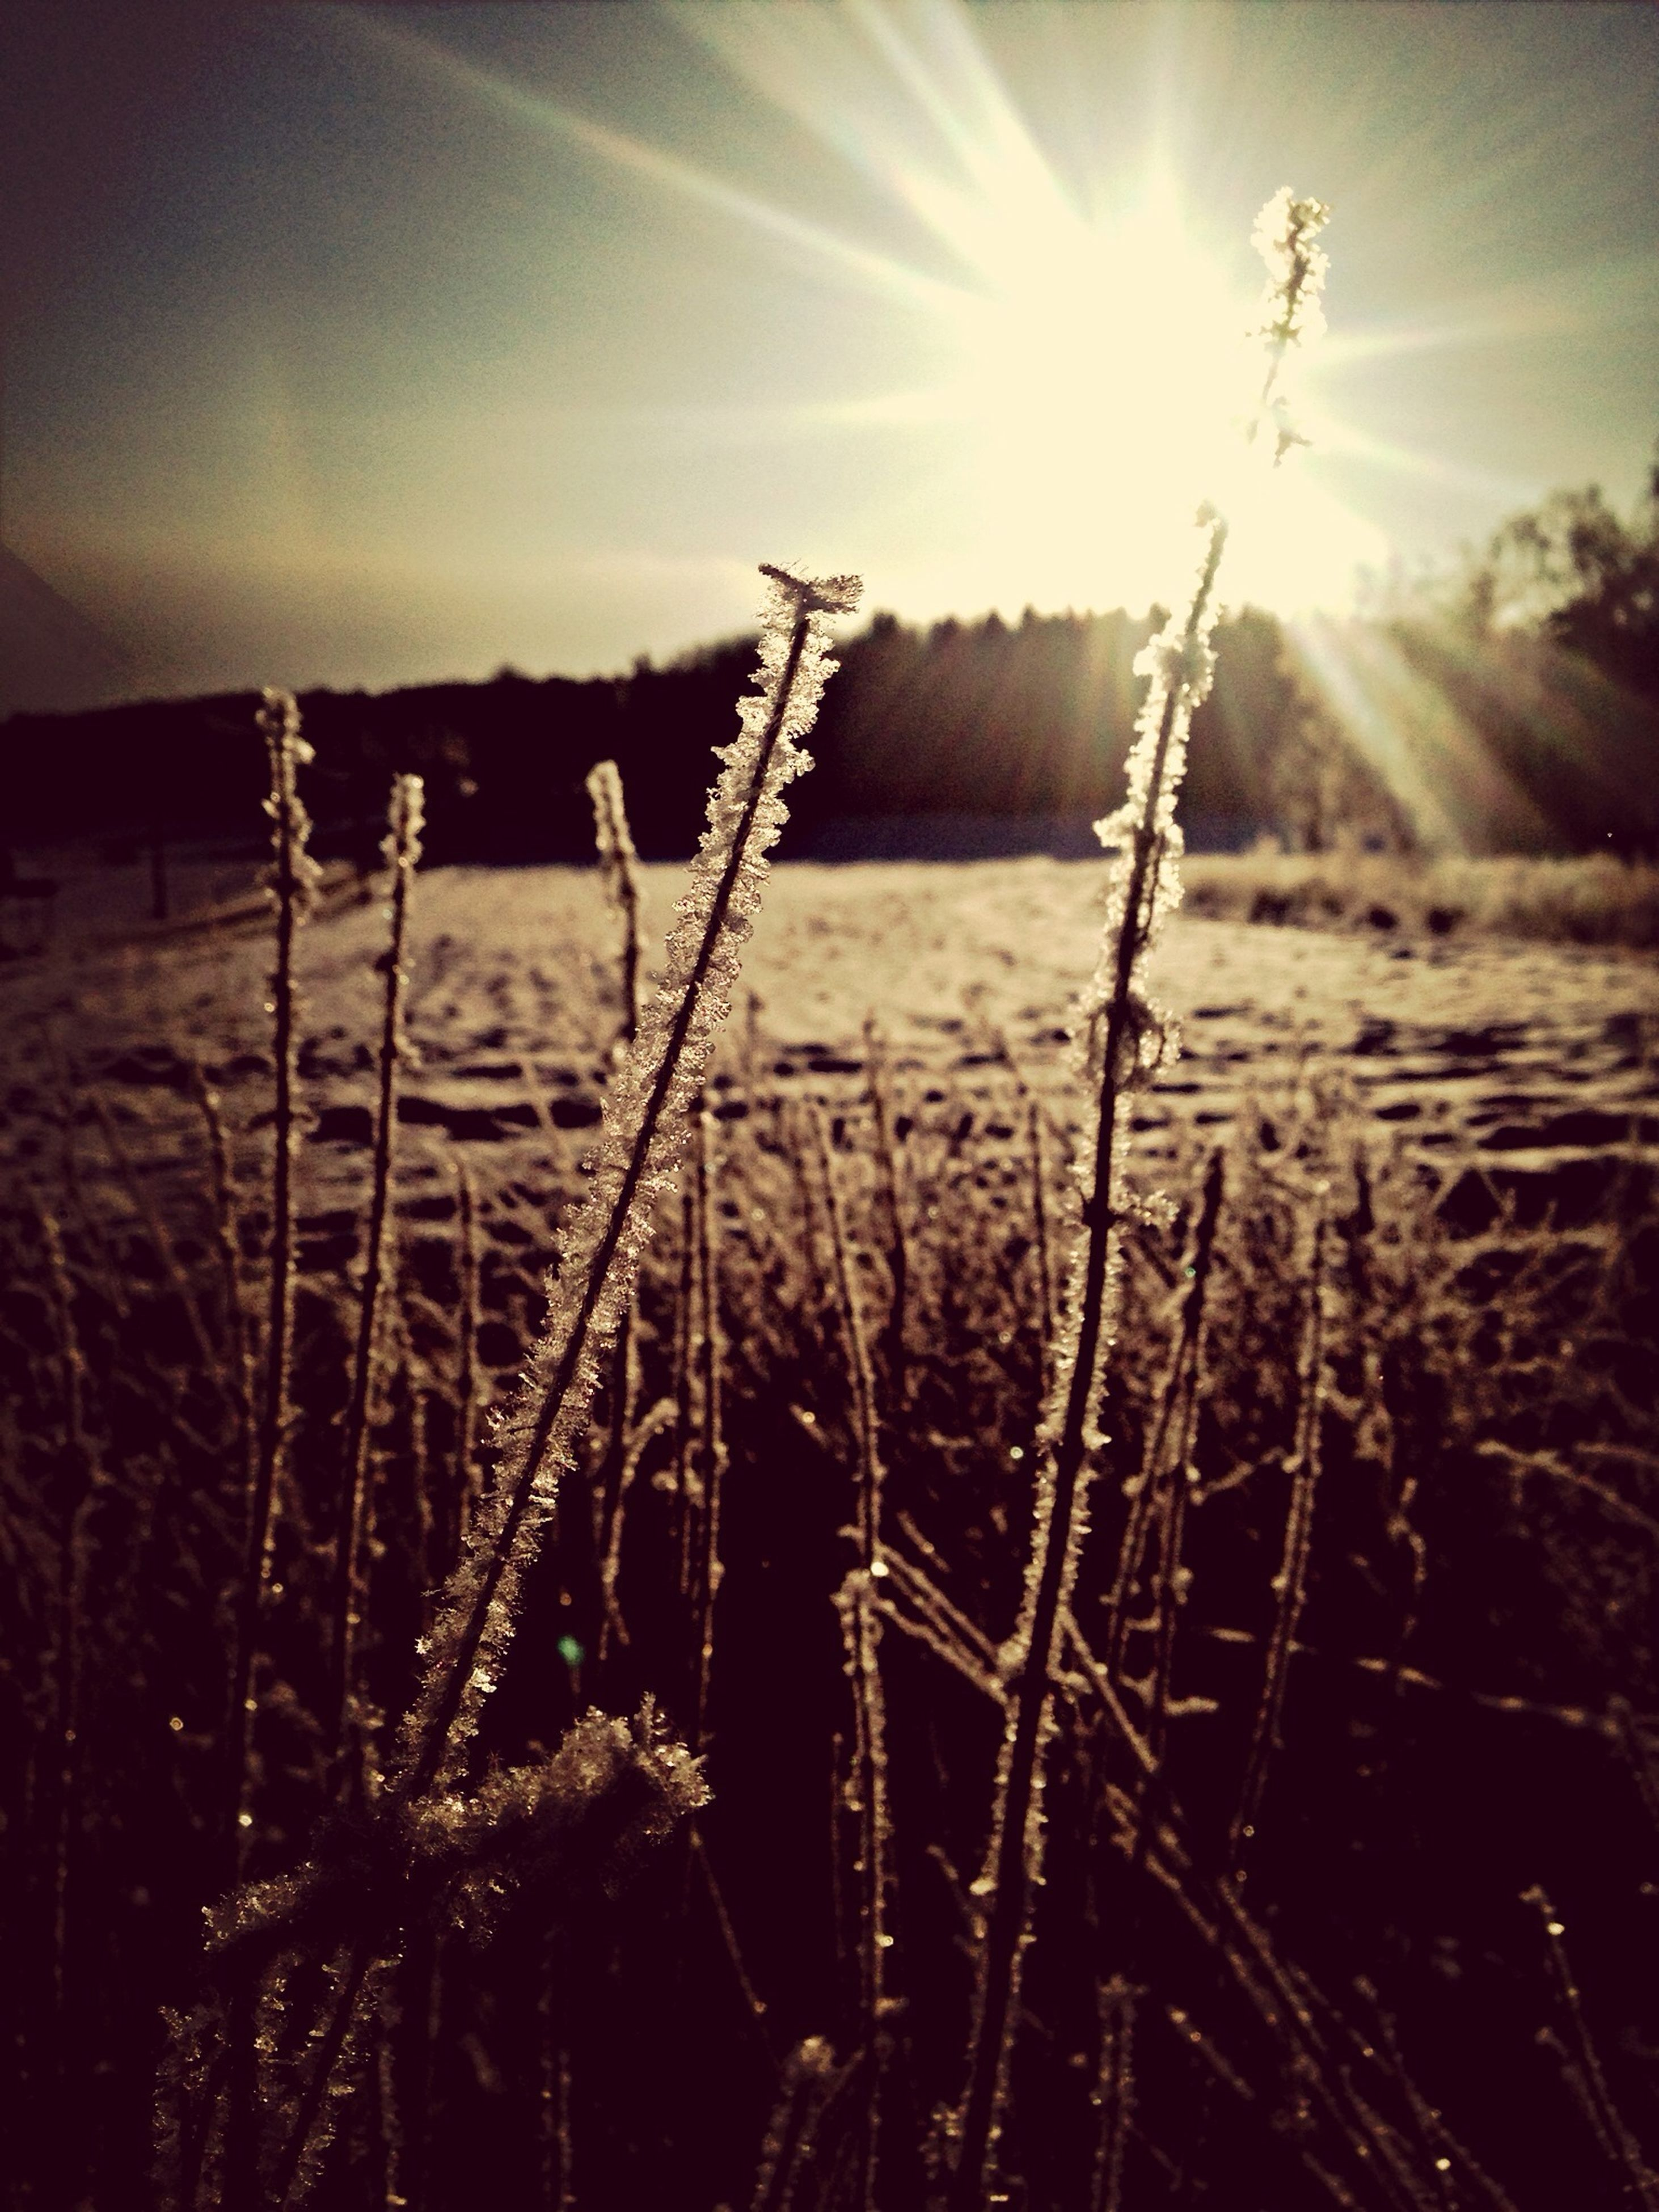 sun, growth, plant, lens flare, sunbeam, sunlight, grass, nature, beauty in nature, tranquility, stem, field, close-up, focus on foreground, growing, sky, sunset, tranquil scene, freshness, bright